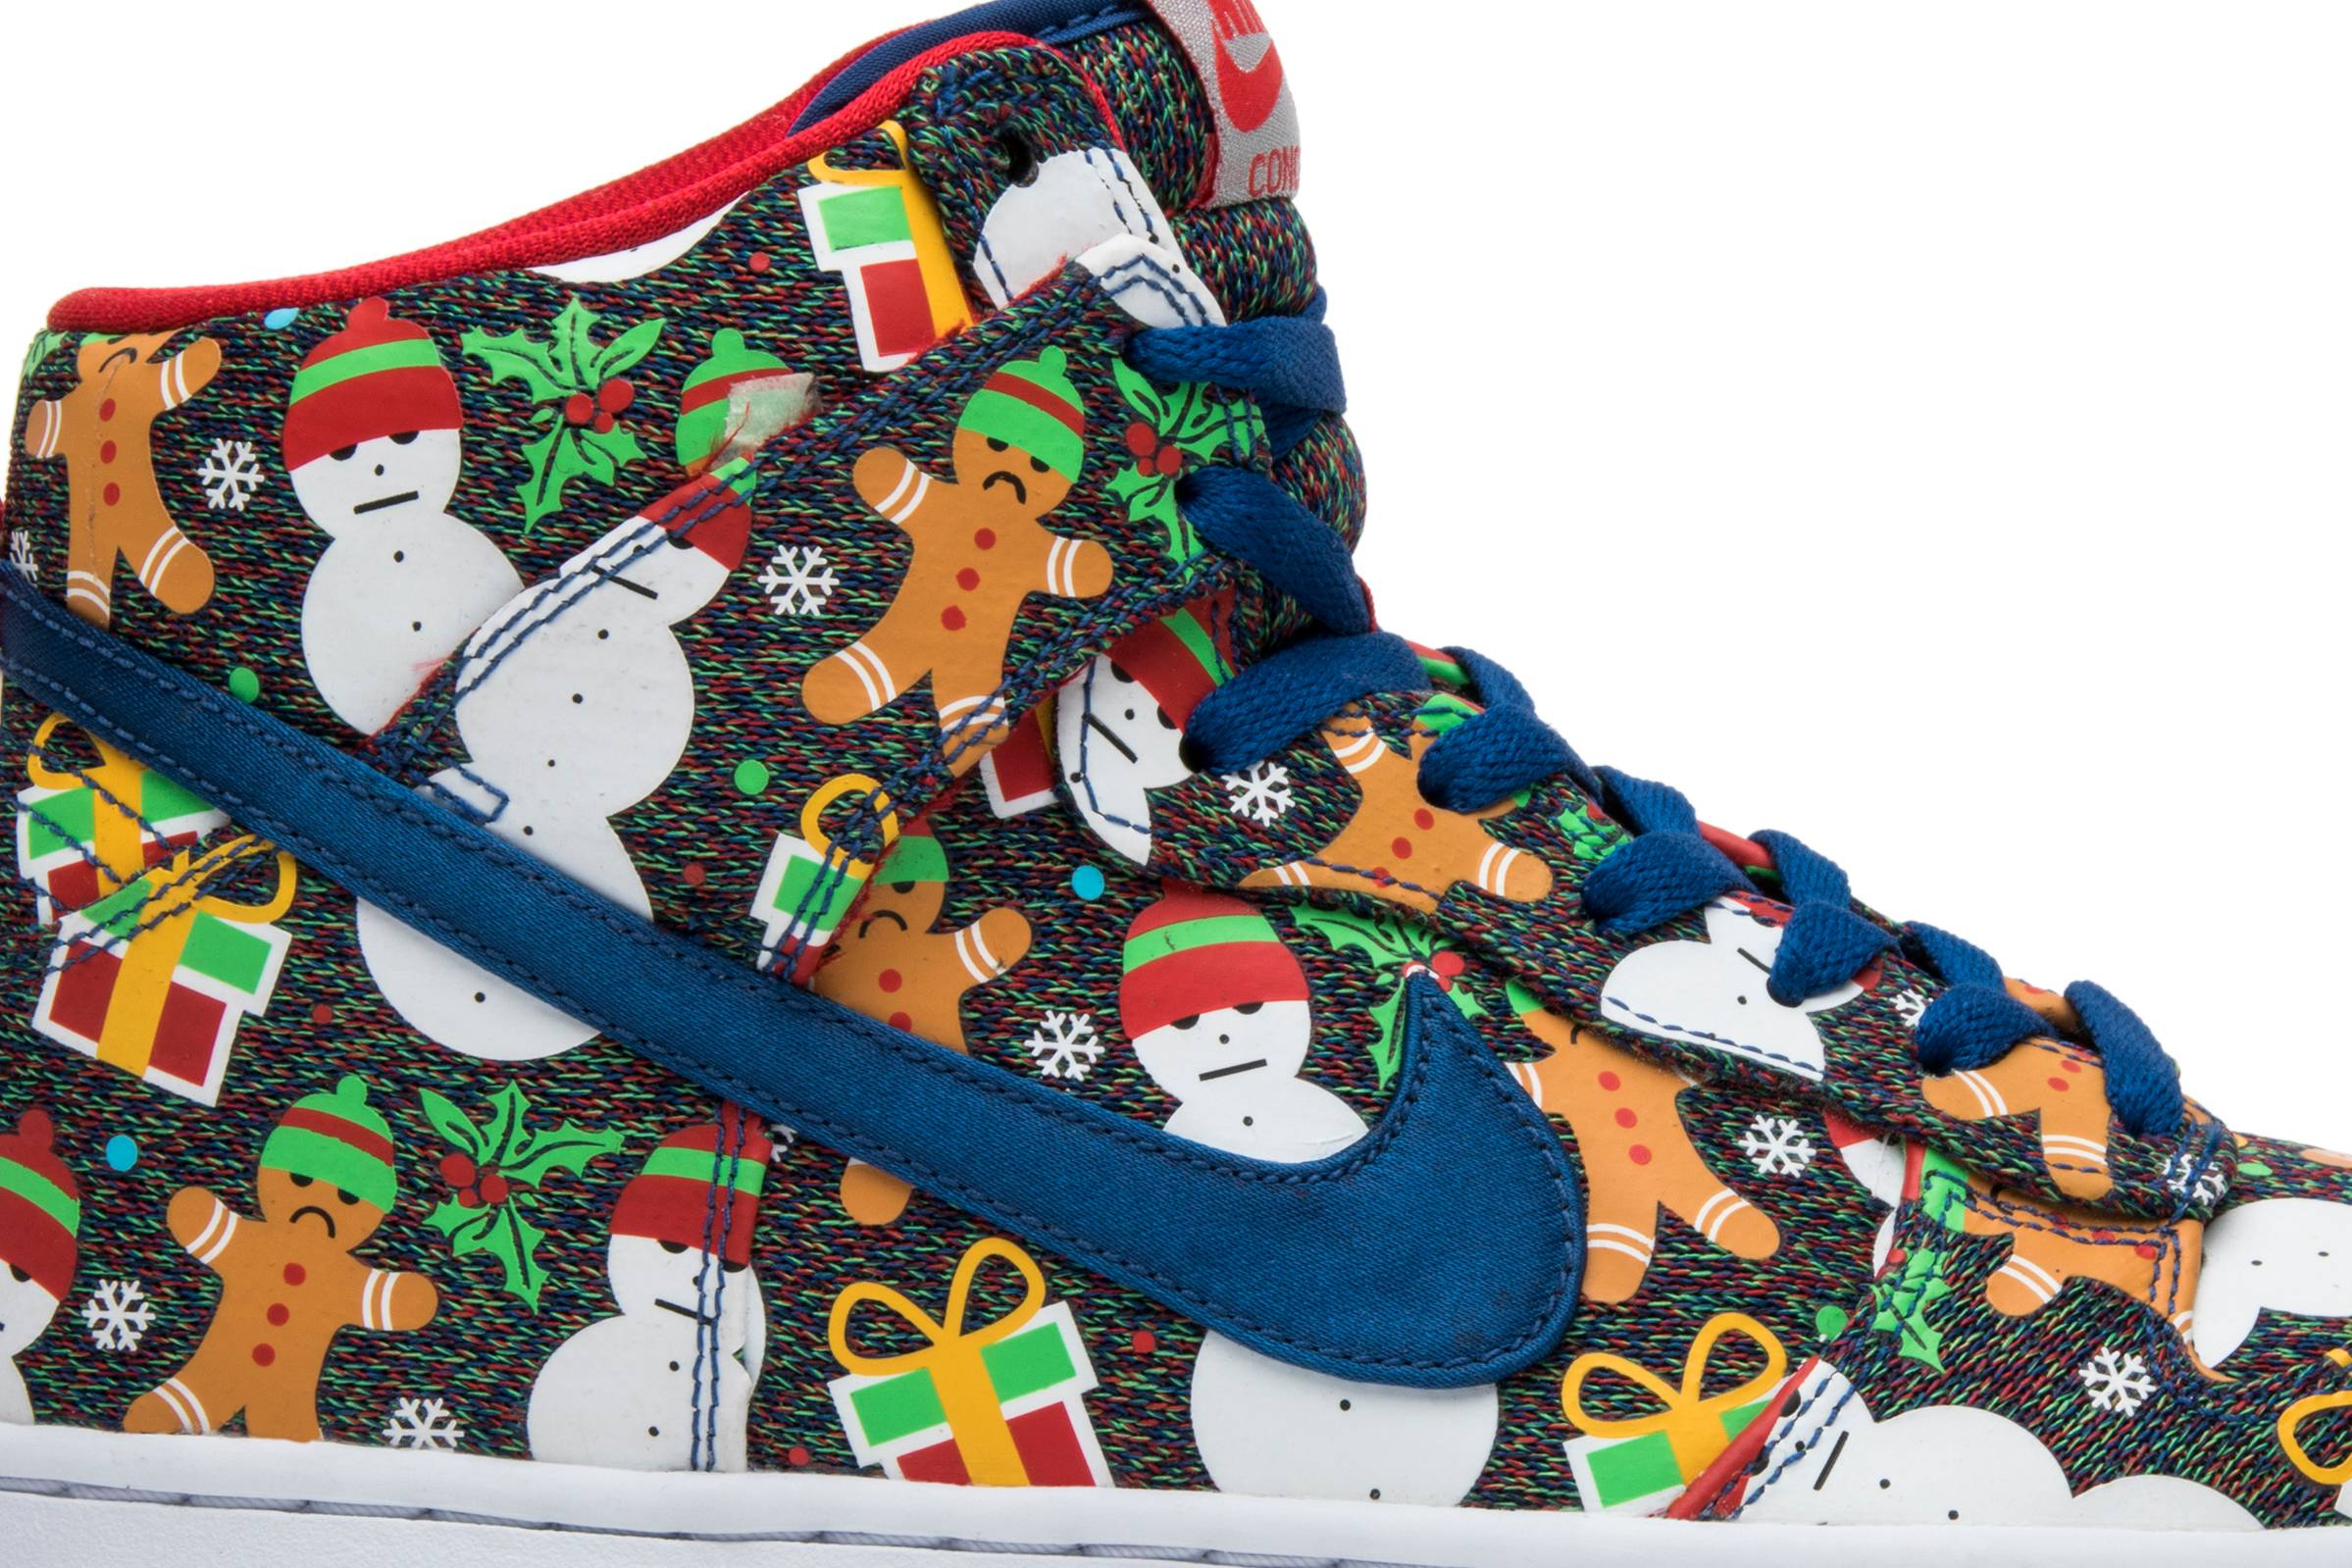 Dunk High SB Prm Cncpts \'Ugly Christmas Sweater\' - Nike - 635525 036 ...